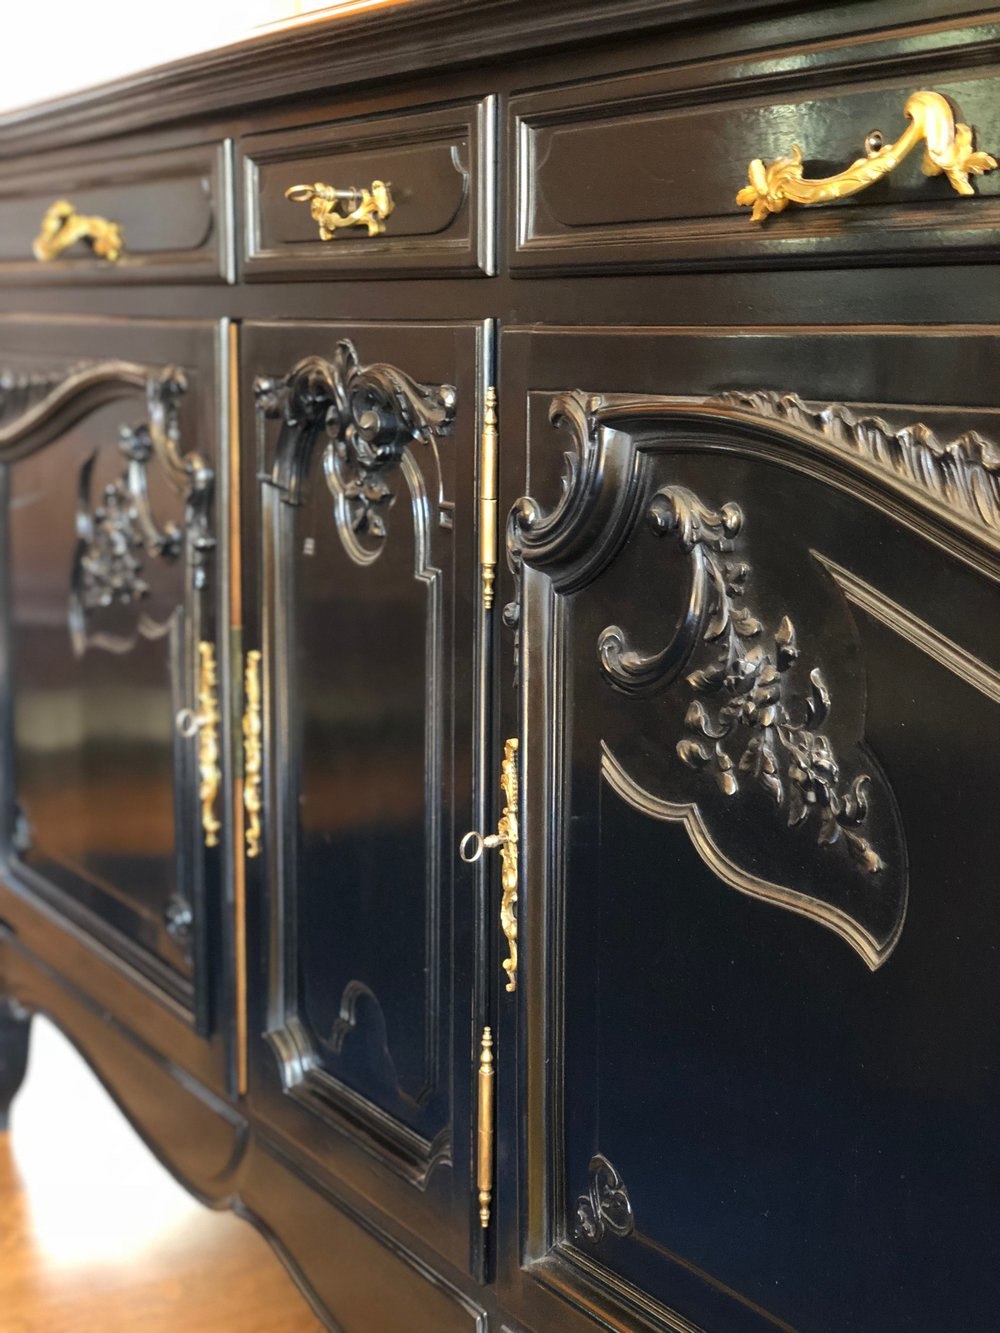 Revitaliste refinished the Antique French Sideboard in an ebonized wood finish and polished the ornate brass drawer pulls and hinges.